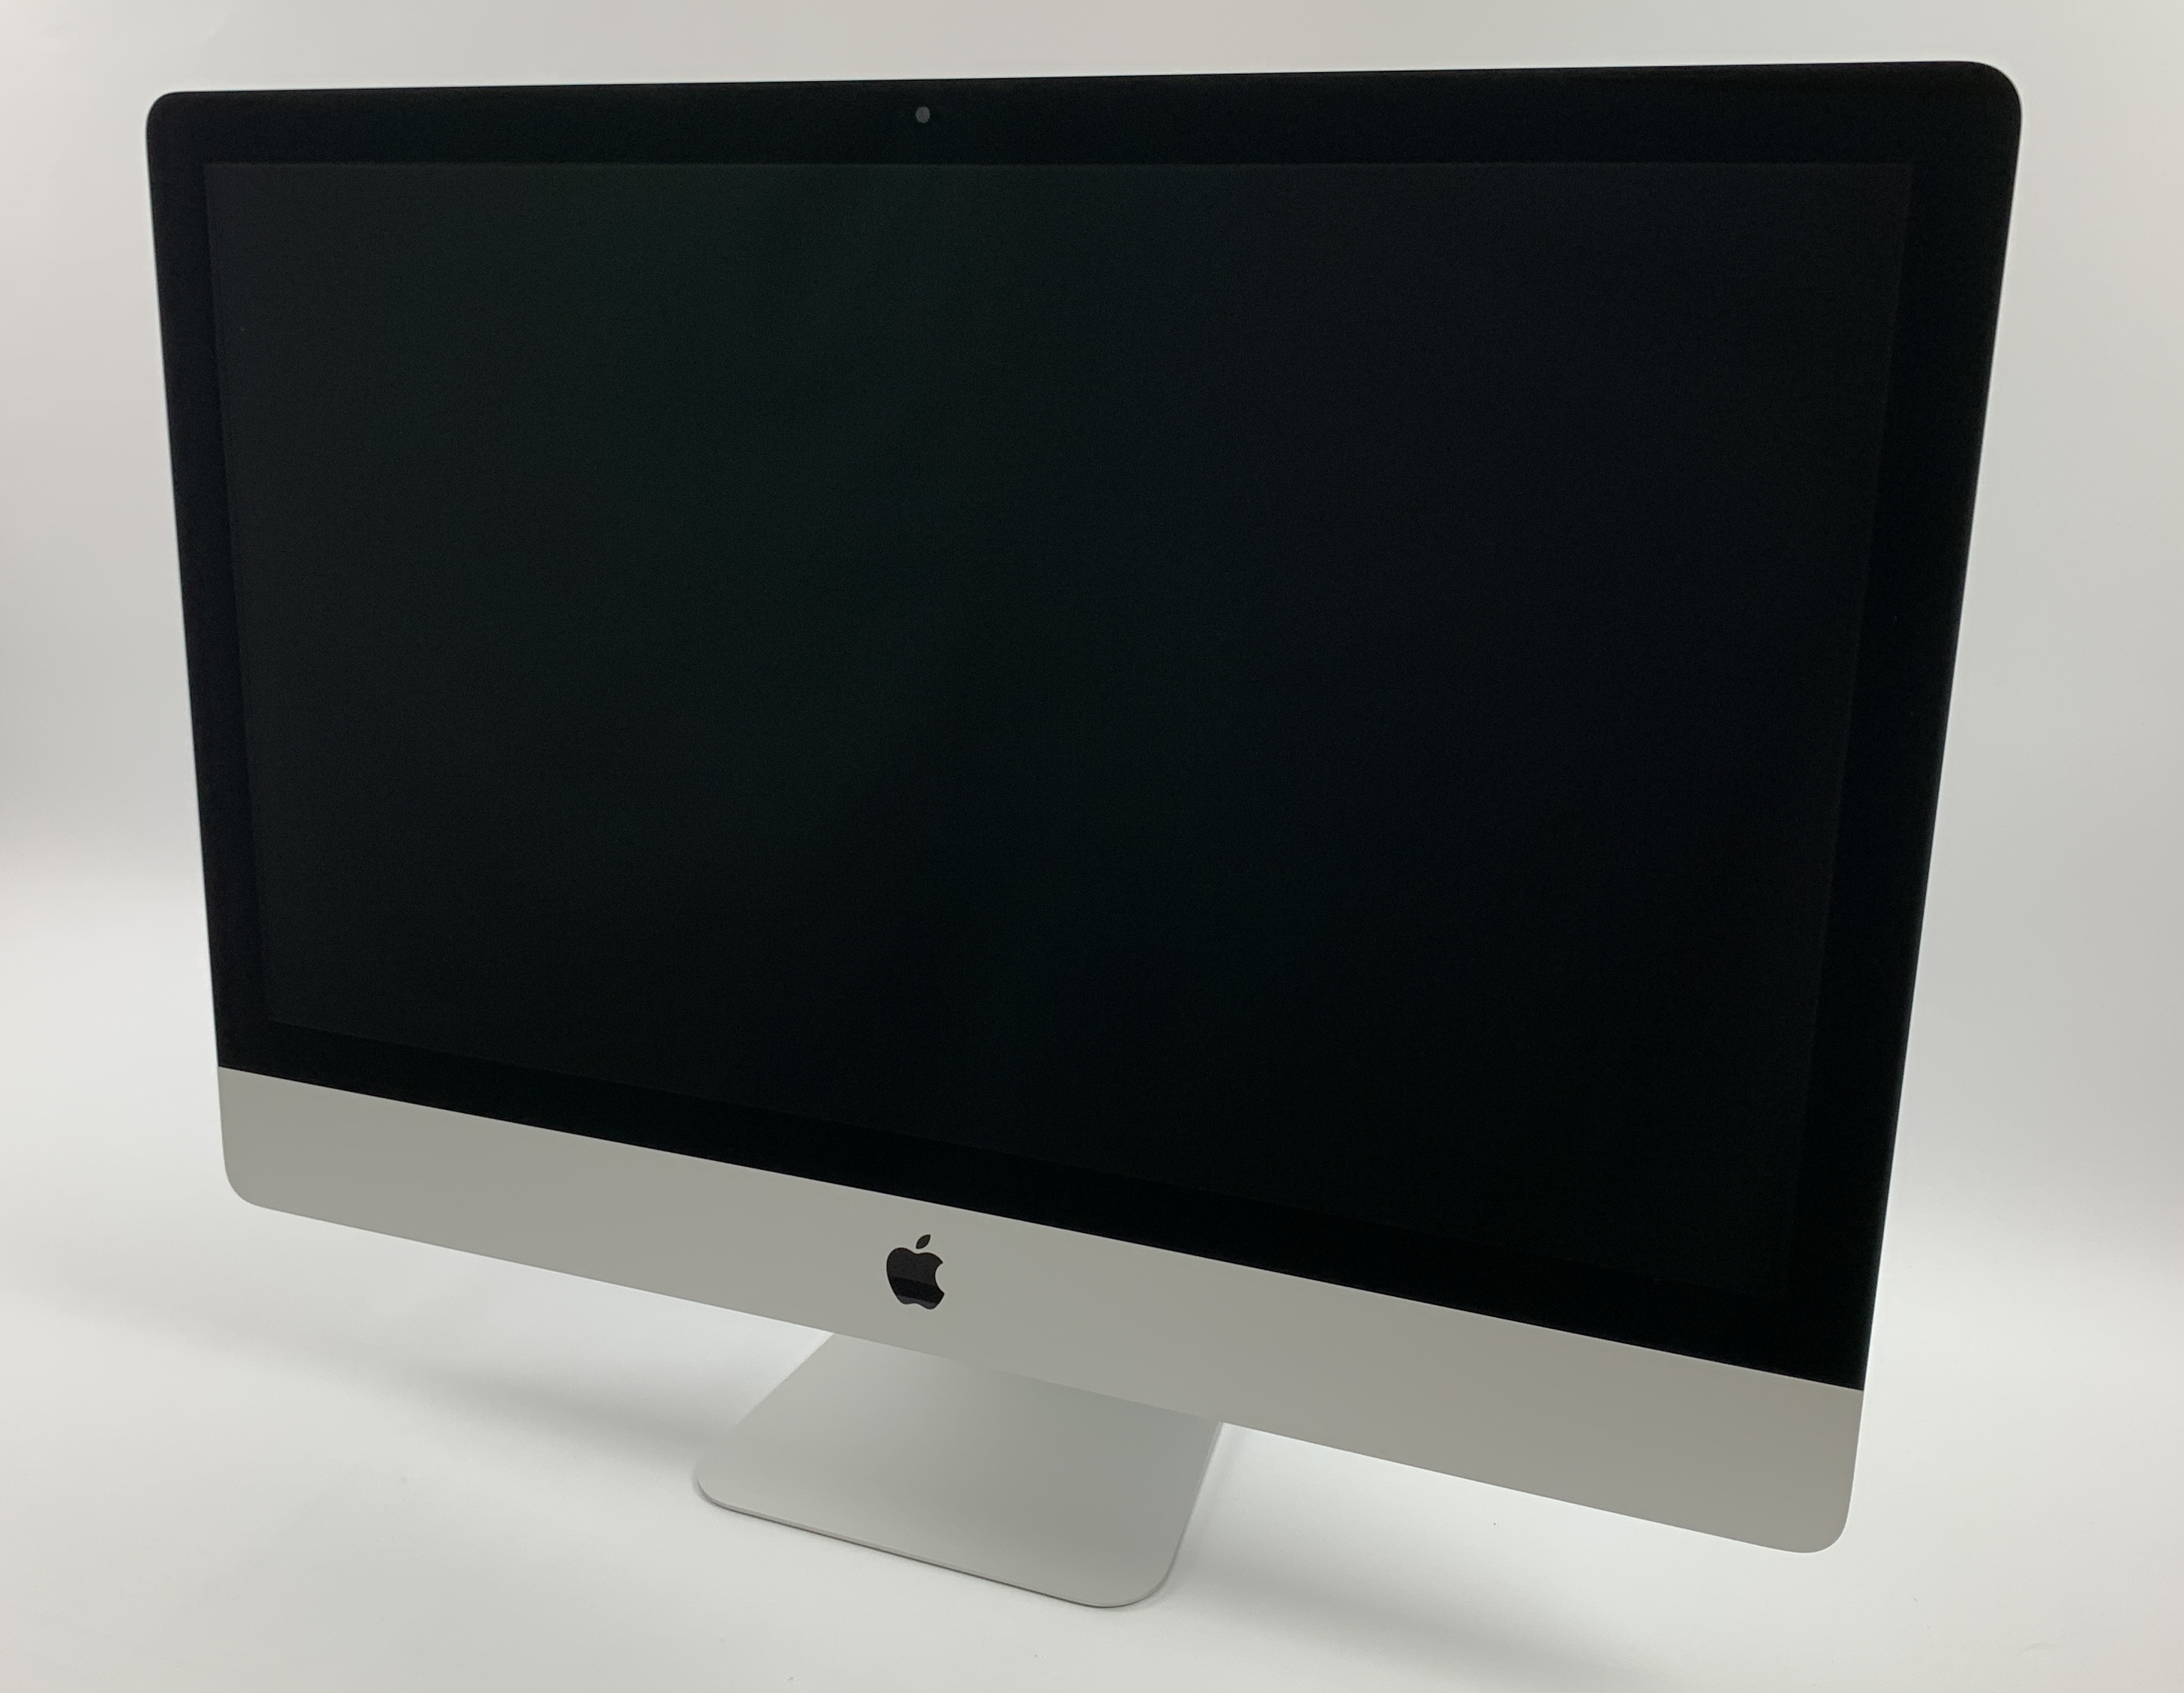 "iMac 27"" Retina 5K Early 2019 (Intel 6-Core i5 3.7 GHz 16 GB RAM 512 GB SSD), Intel 6-Core i5 3.7 GHz, 16 GB RAM, 512 GB SSD, imagen 1"